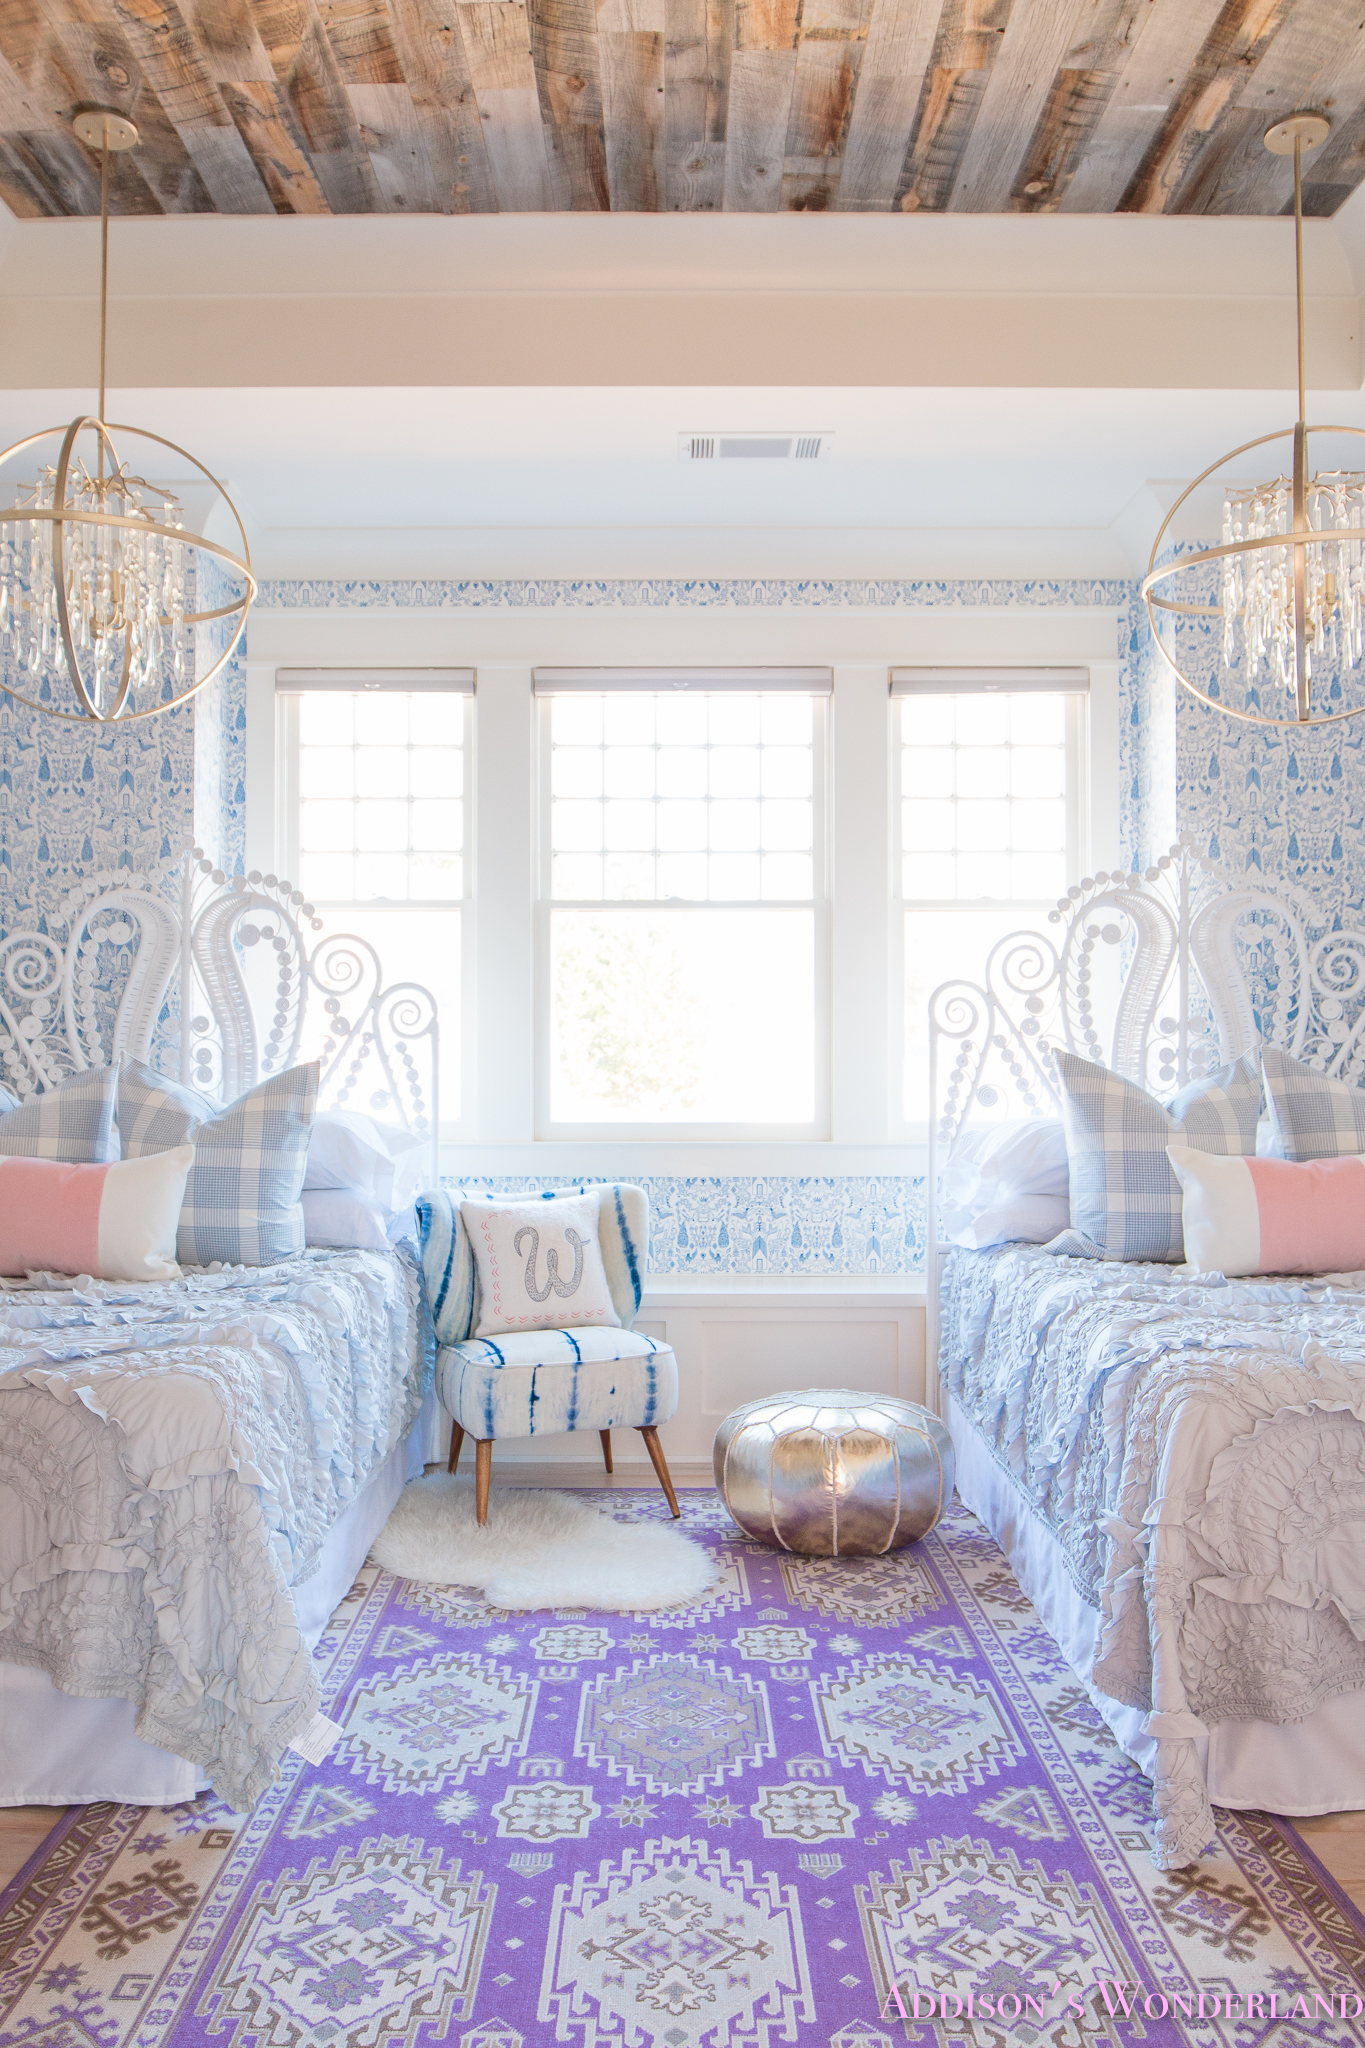 Our New Caitlin Wilson Pillows + Update on Winter's Blue & White ...